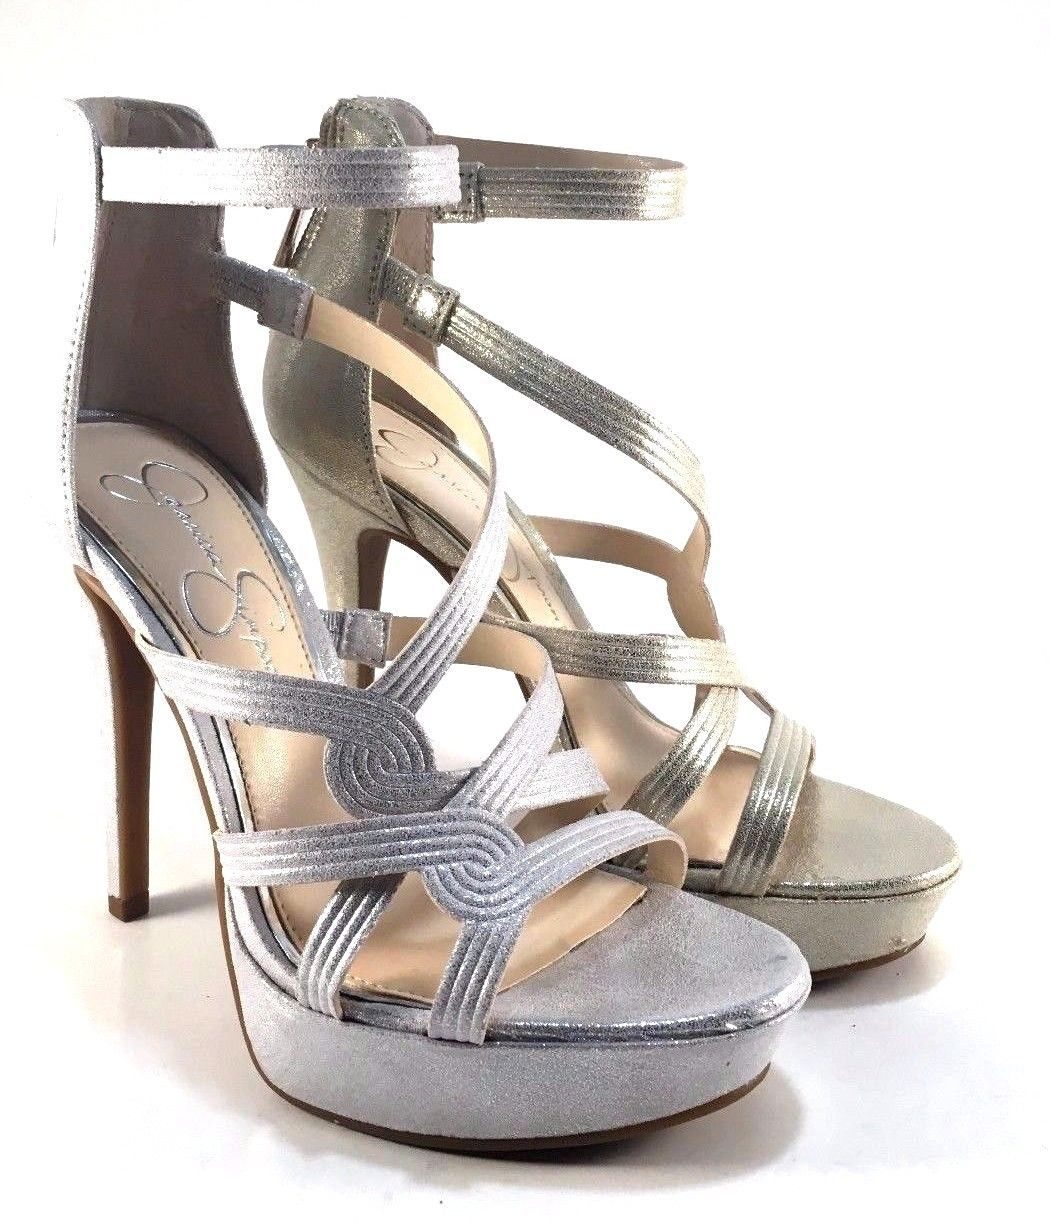 Primary image for Jessica Simpson Bellanne Shimmer Strappy Stiletto Dress Sandal Choose Sz/Color